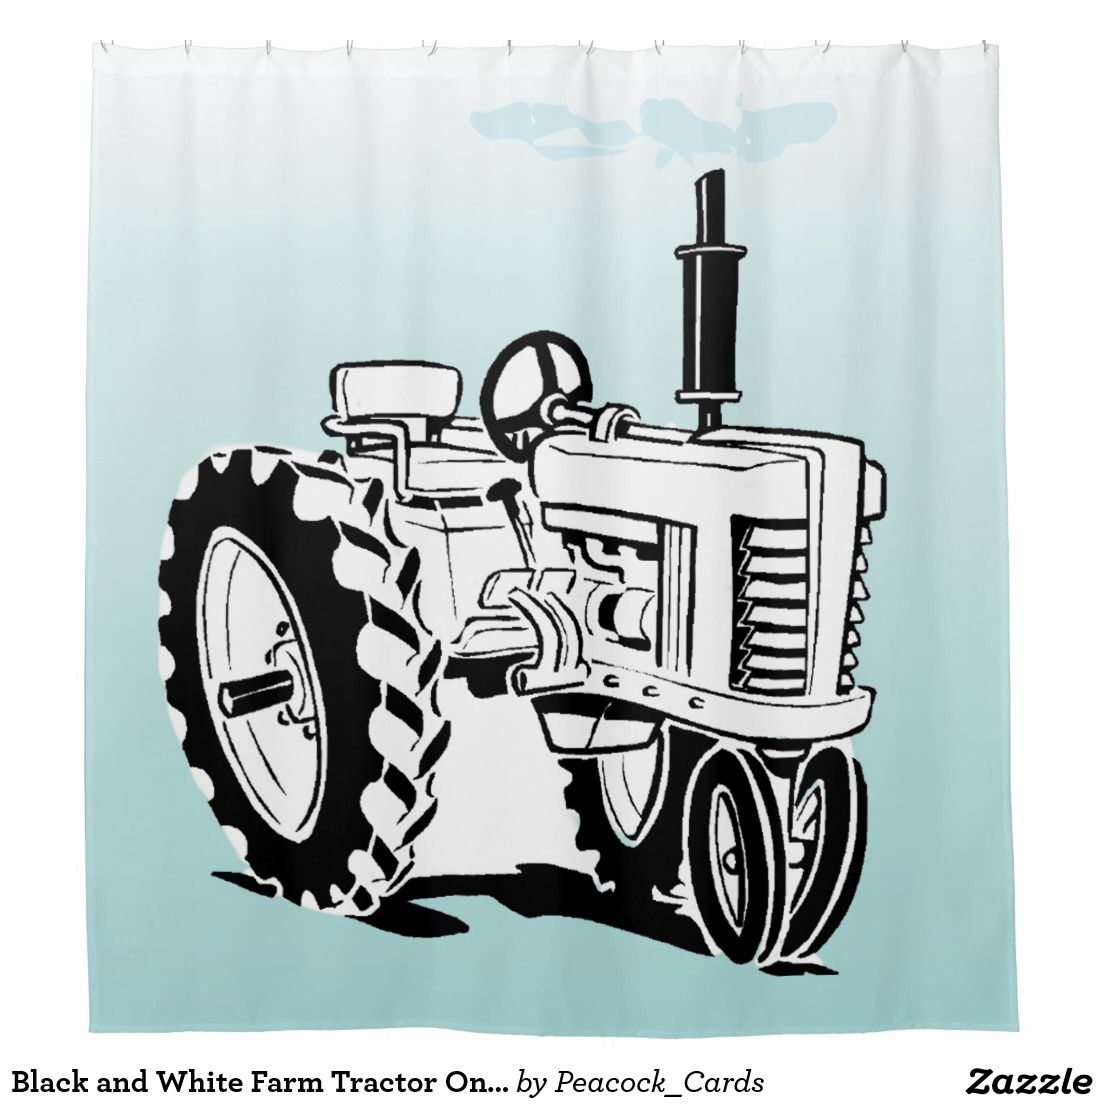 Black and white farm tractor on blue shower curtain